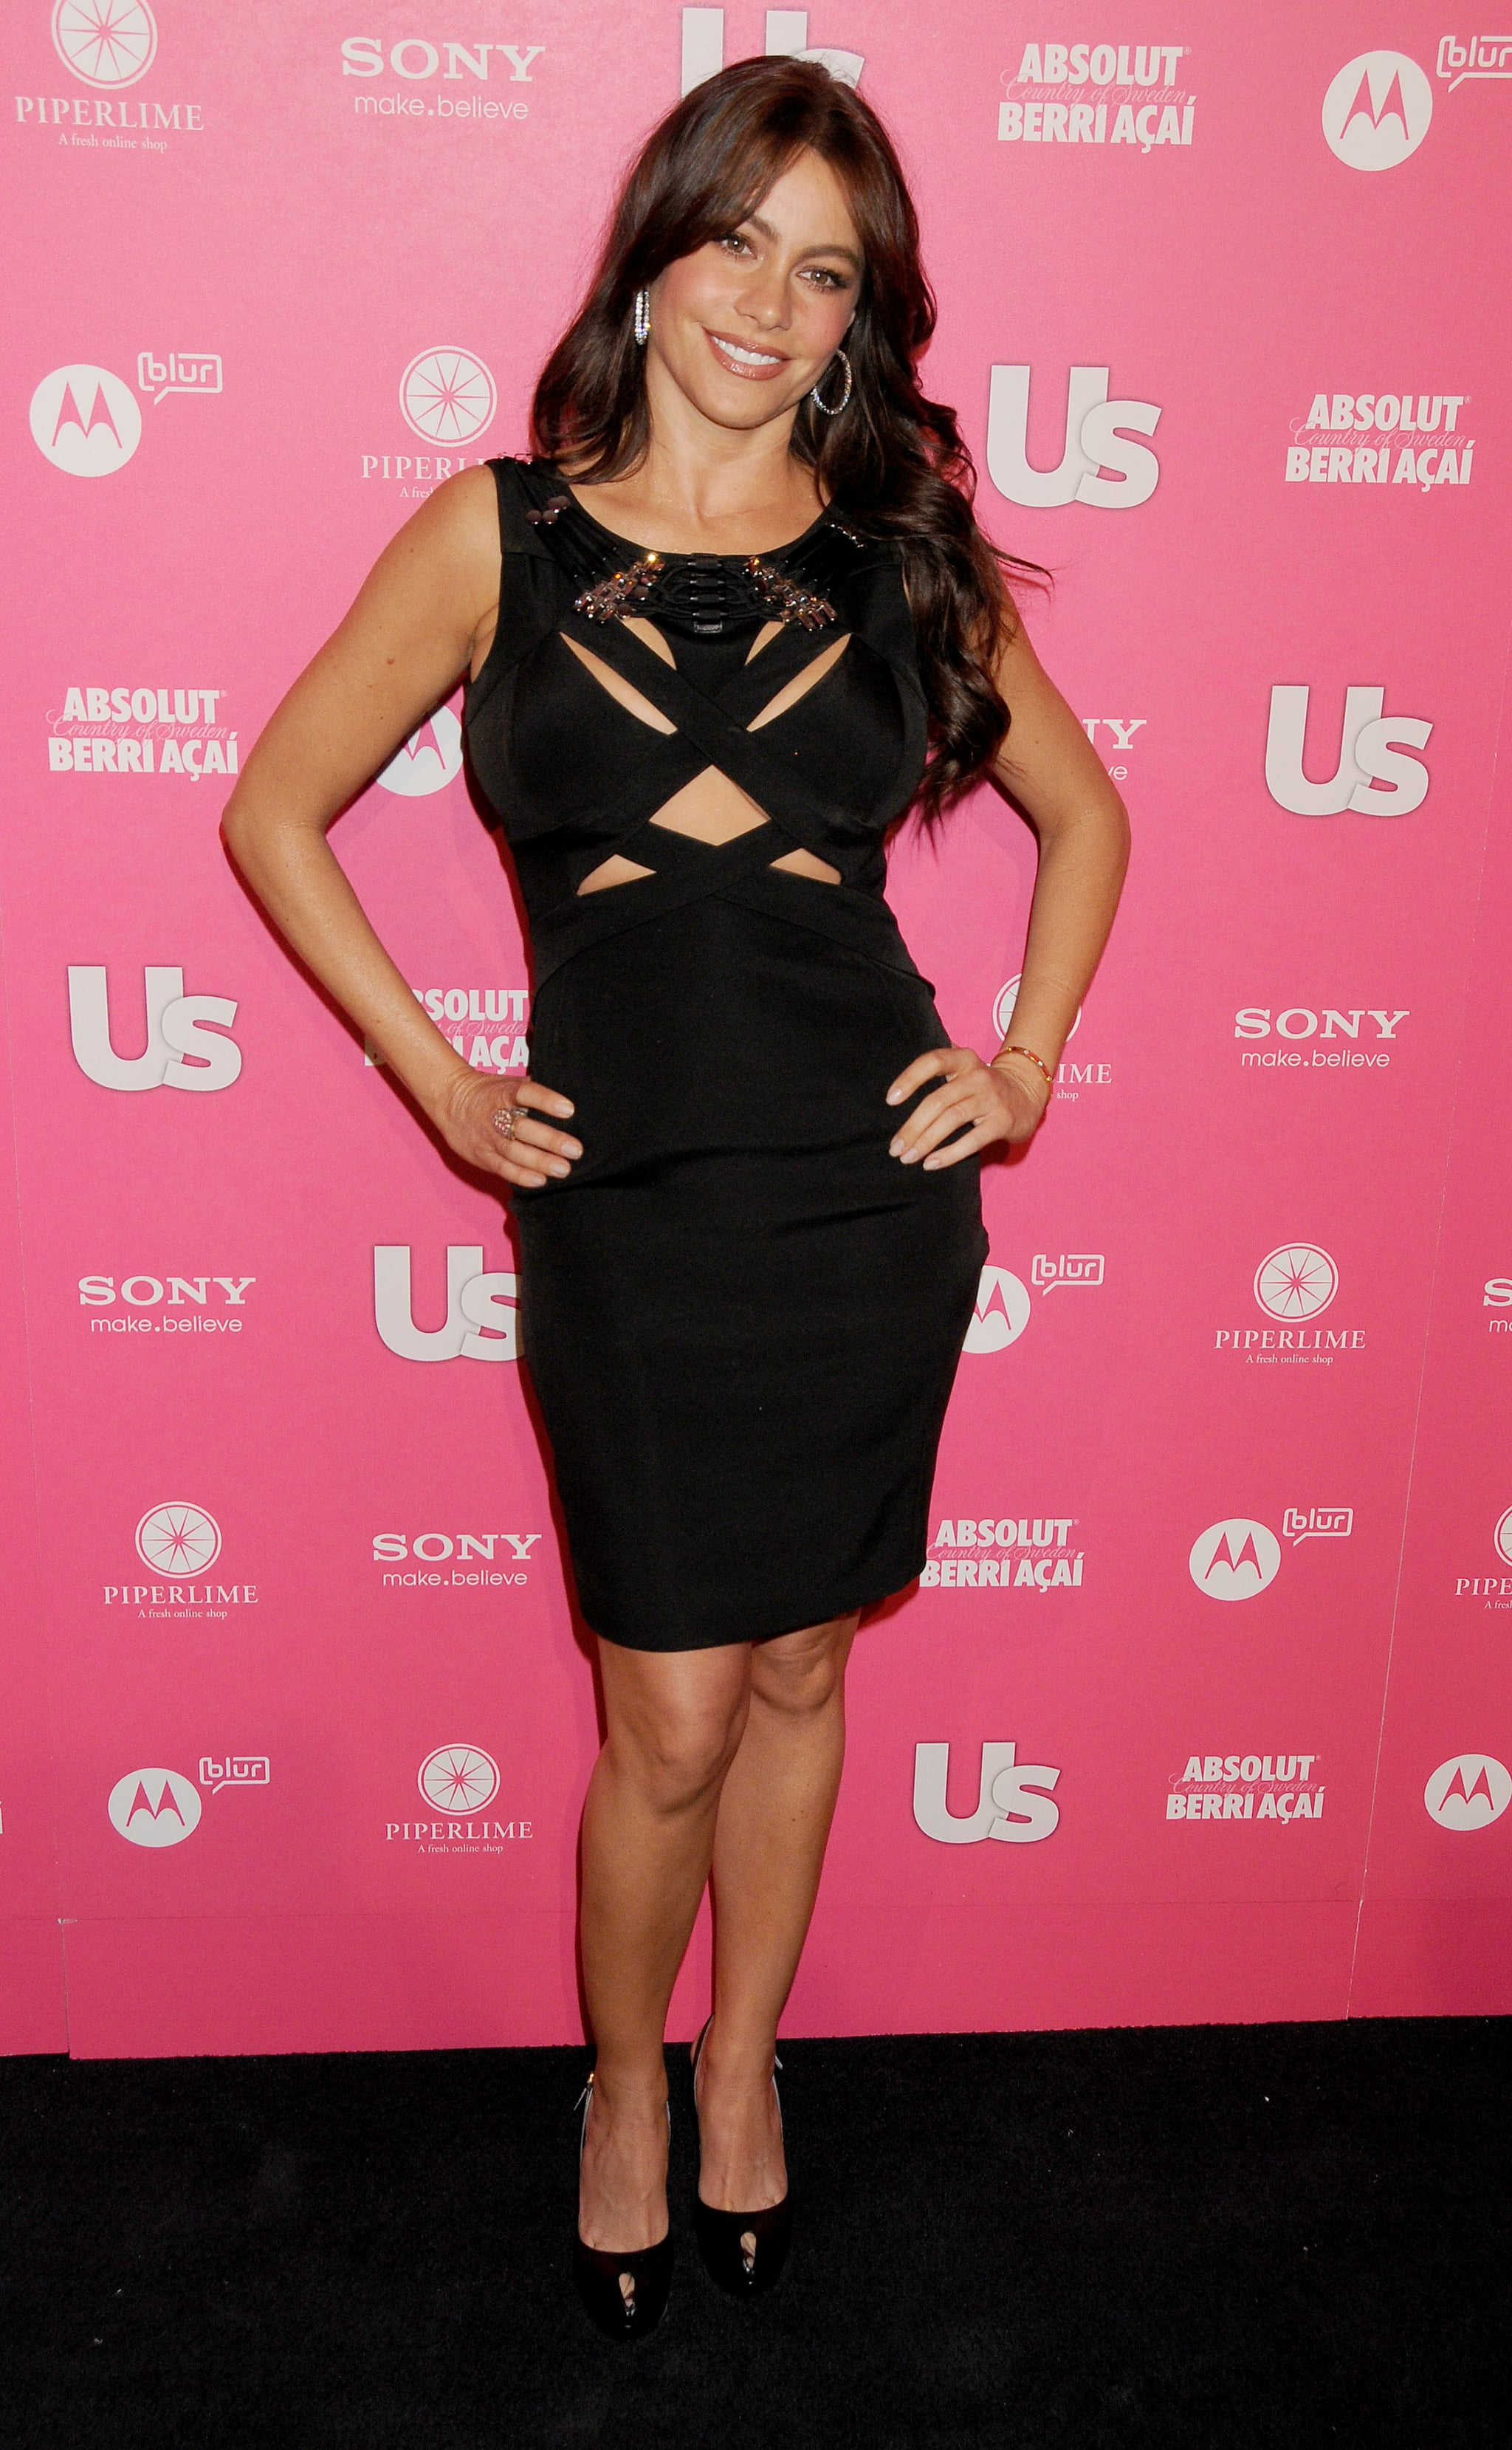 X marks the spot for sultry style at Us Weekly's Hot Hollywood Style party in April 2010.